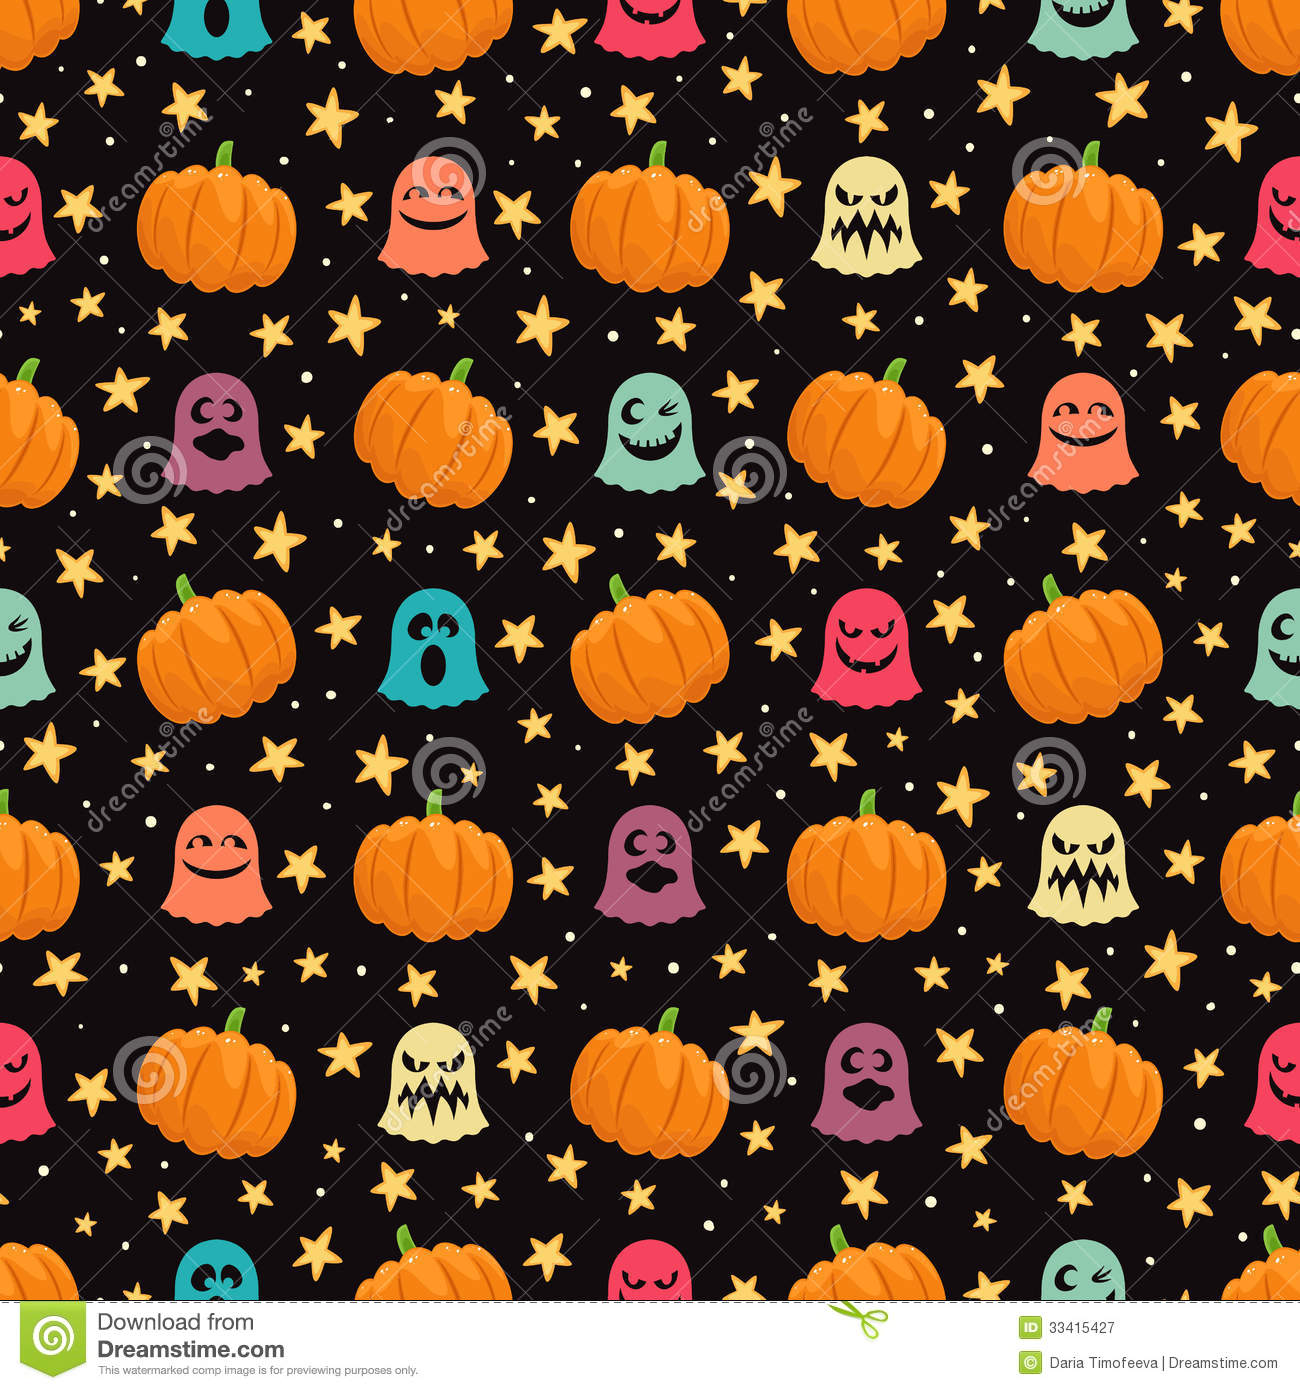 Fall Pumpkin Iphone Wallpaper Pumpkins And Ghosts Stock Vector Illustration Of Abstract